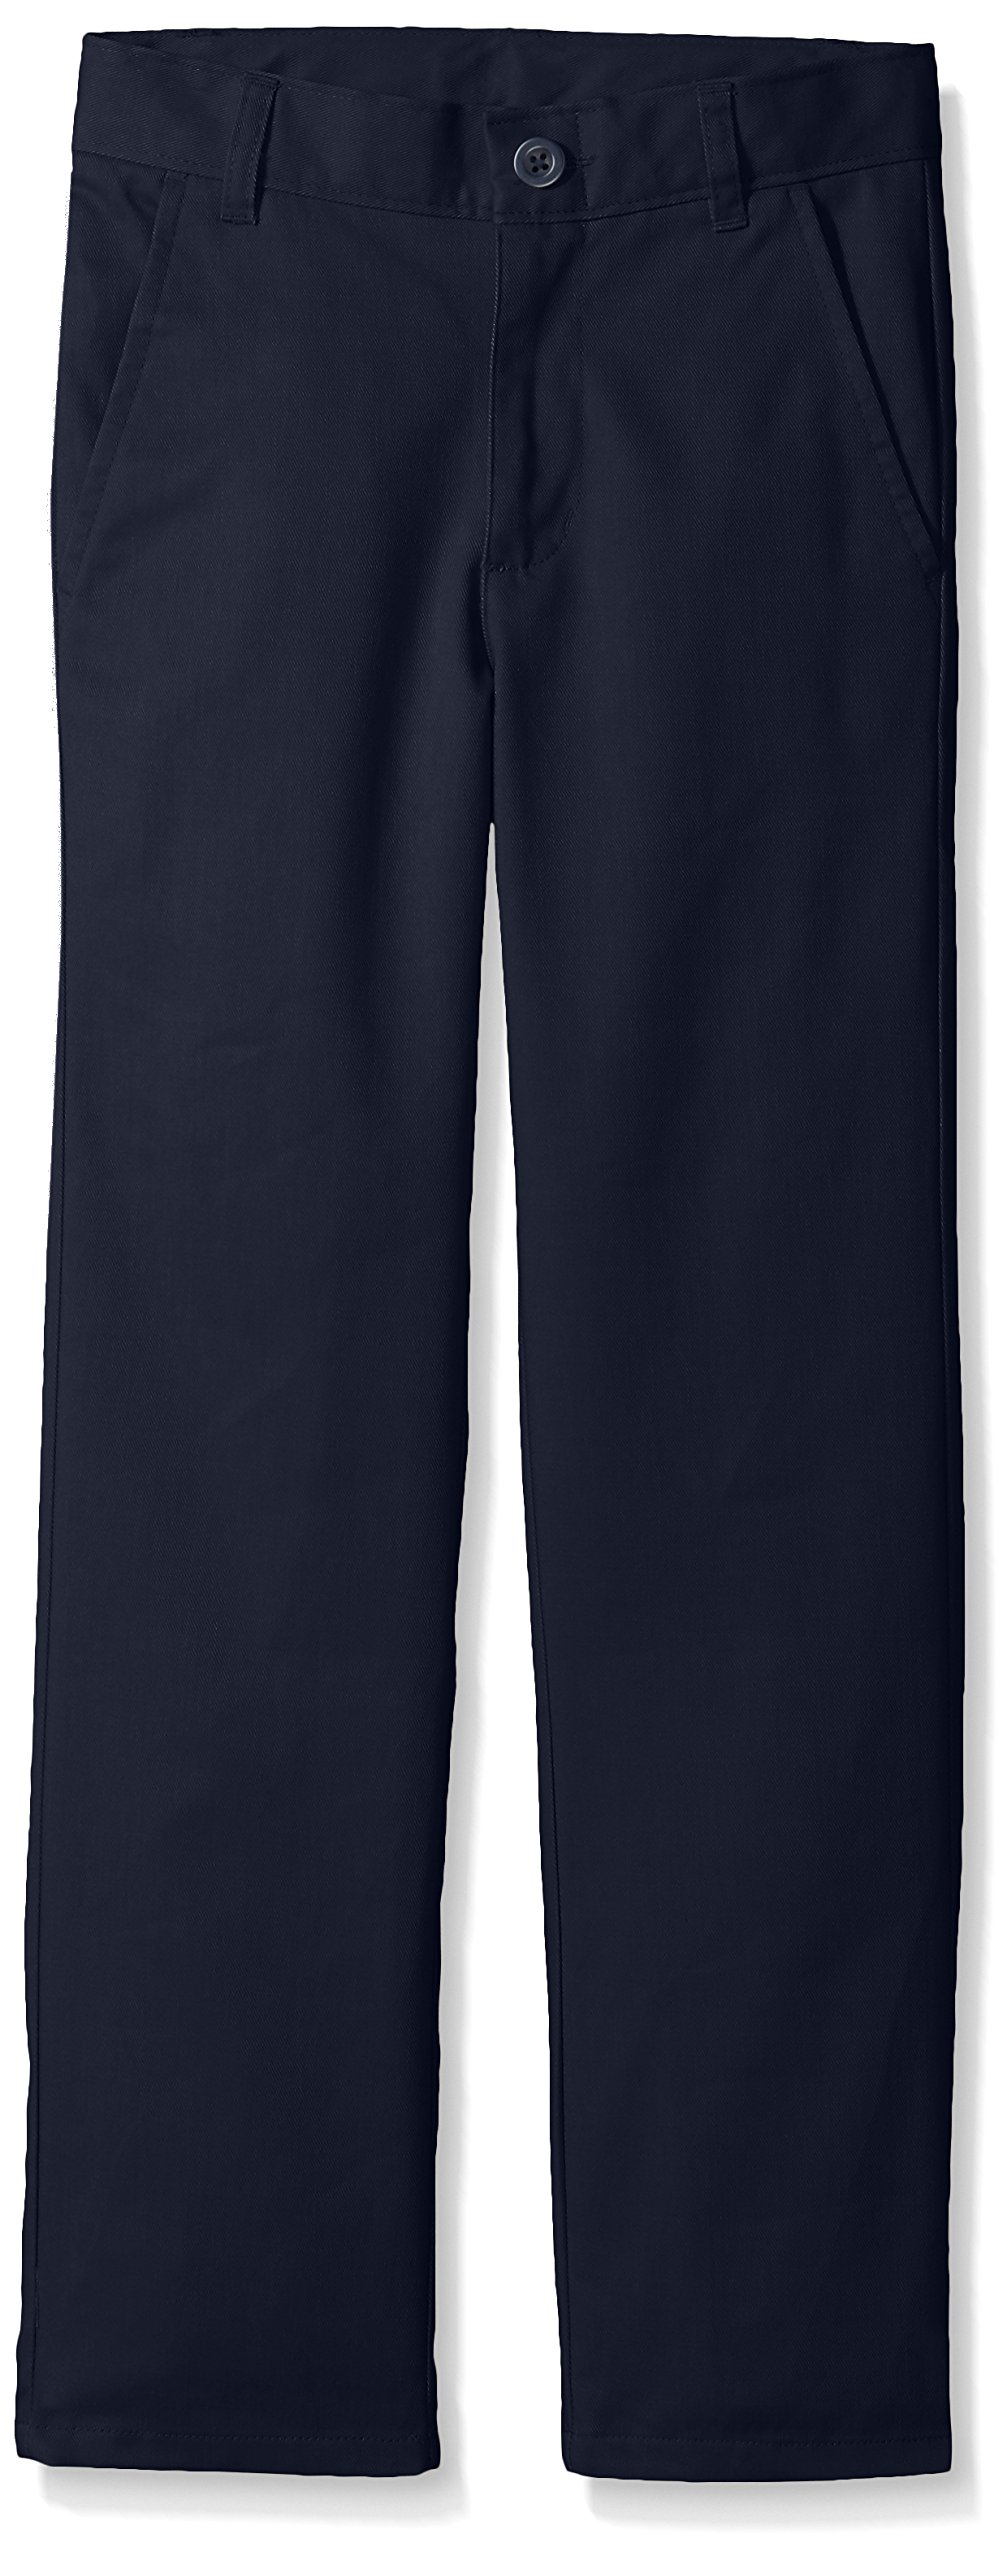 Nautica Boys' Flat Front Twill Double Knee Pant,NAVY,14S by Nautica